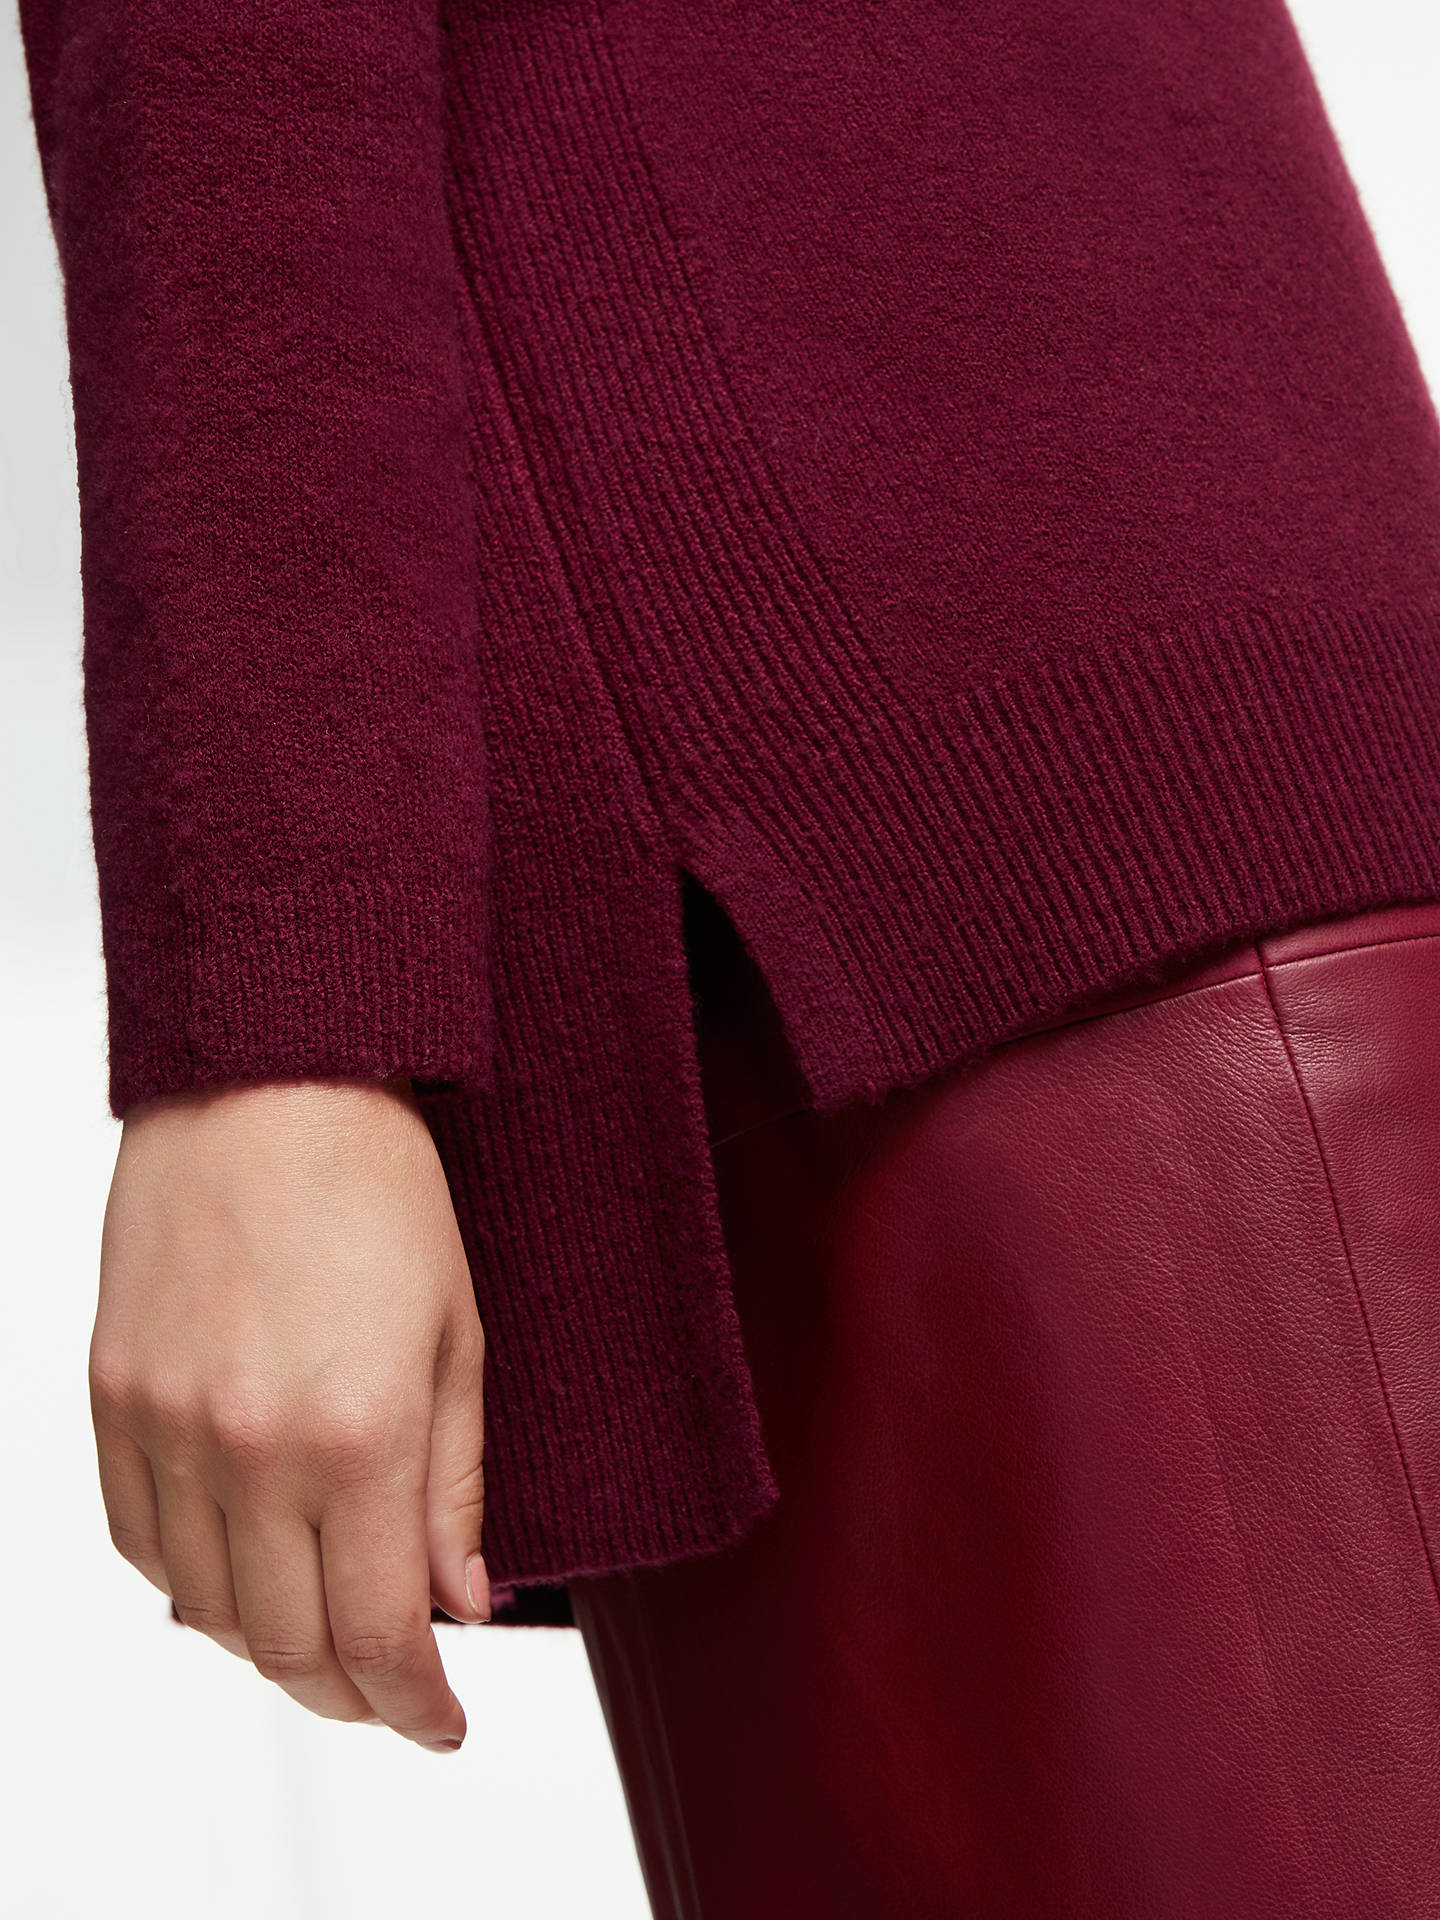 Buy John Lewis & Partners Cowl Neck Sweater, Burgundy, XS Online at johnlewis.com